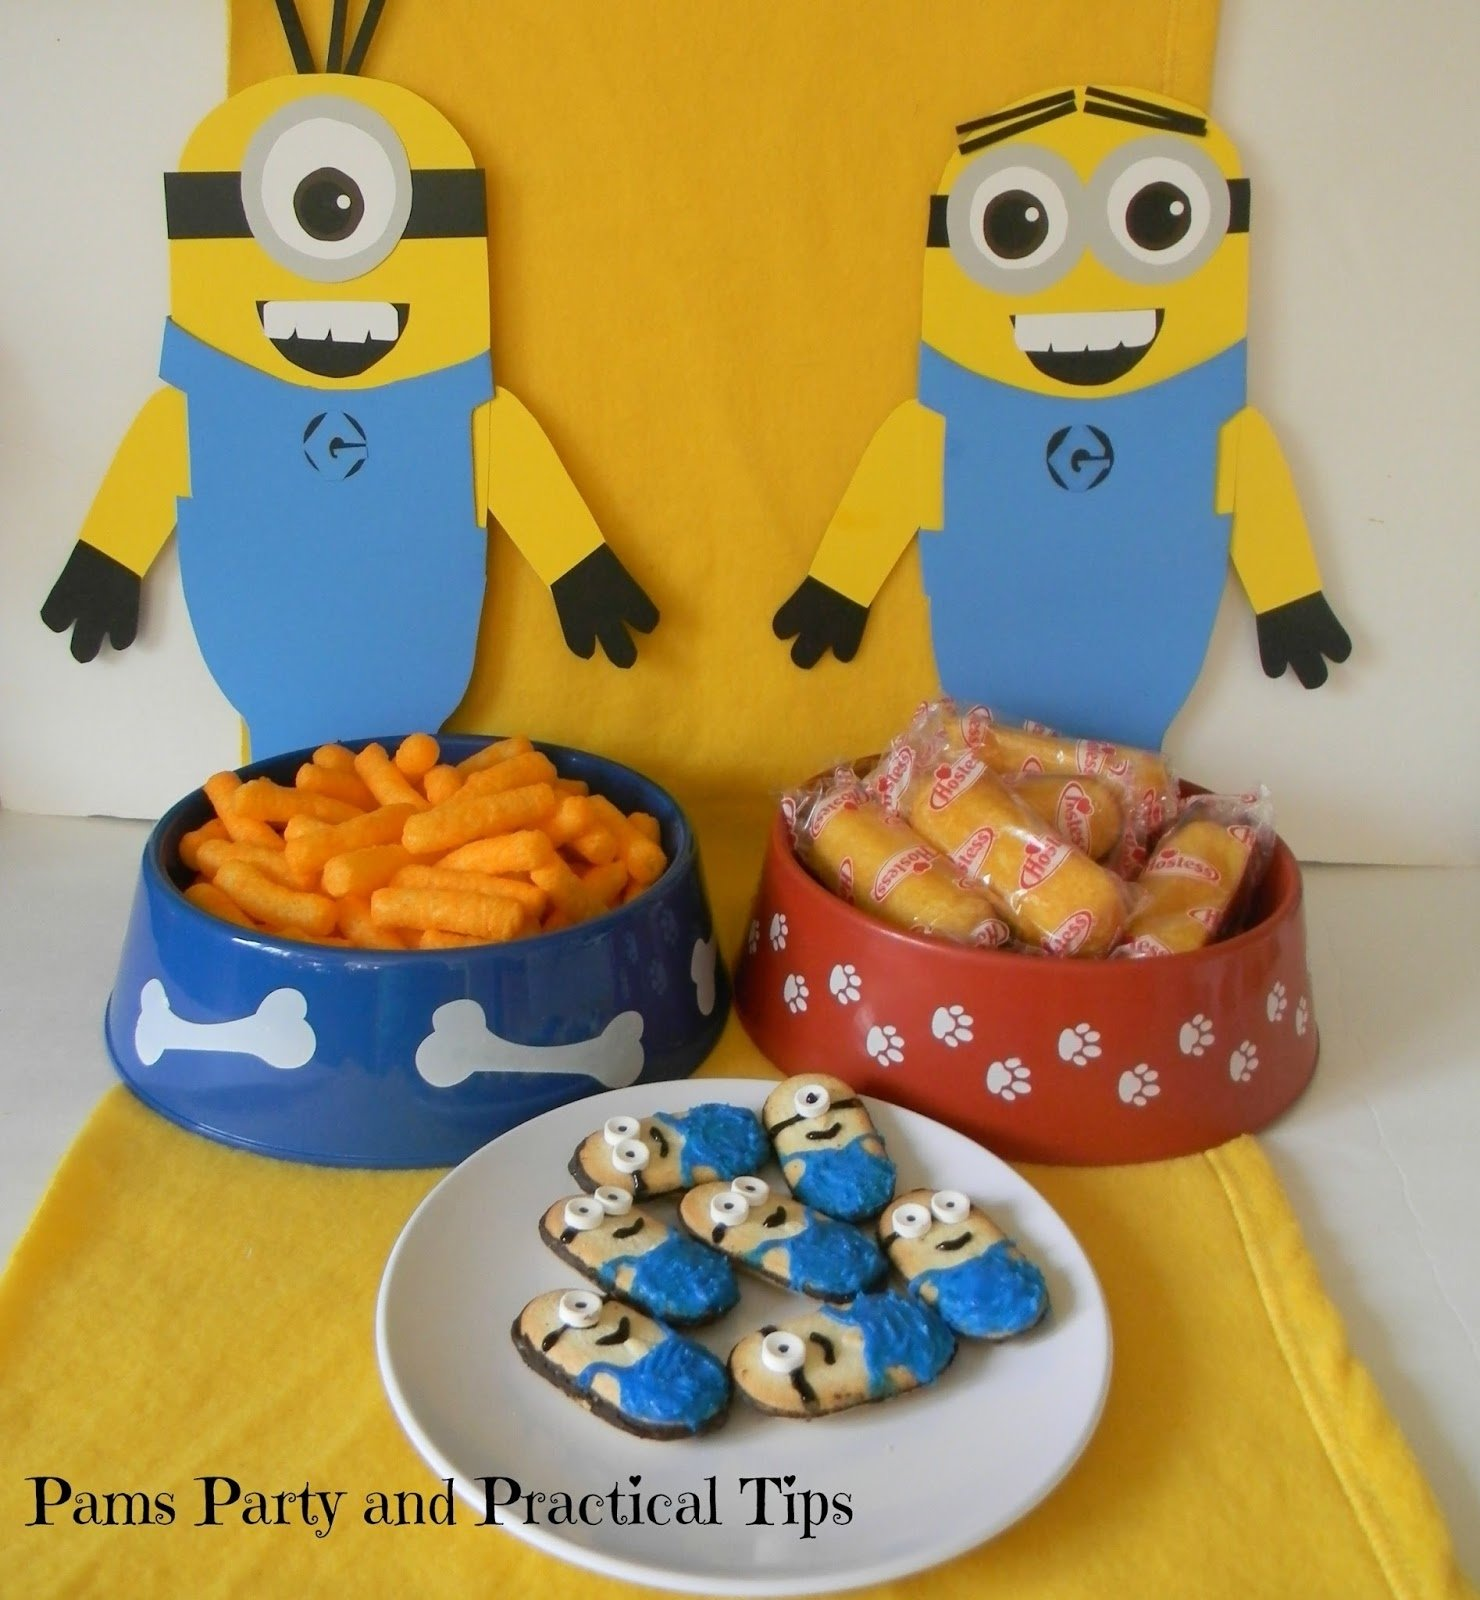 10 Stylish Despicable Me Party Food Ideas pams party practical tips despicable me party food and game ideas 2020